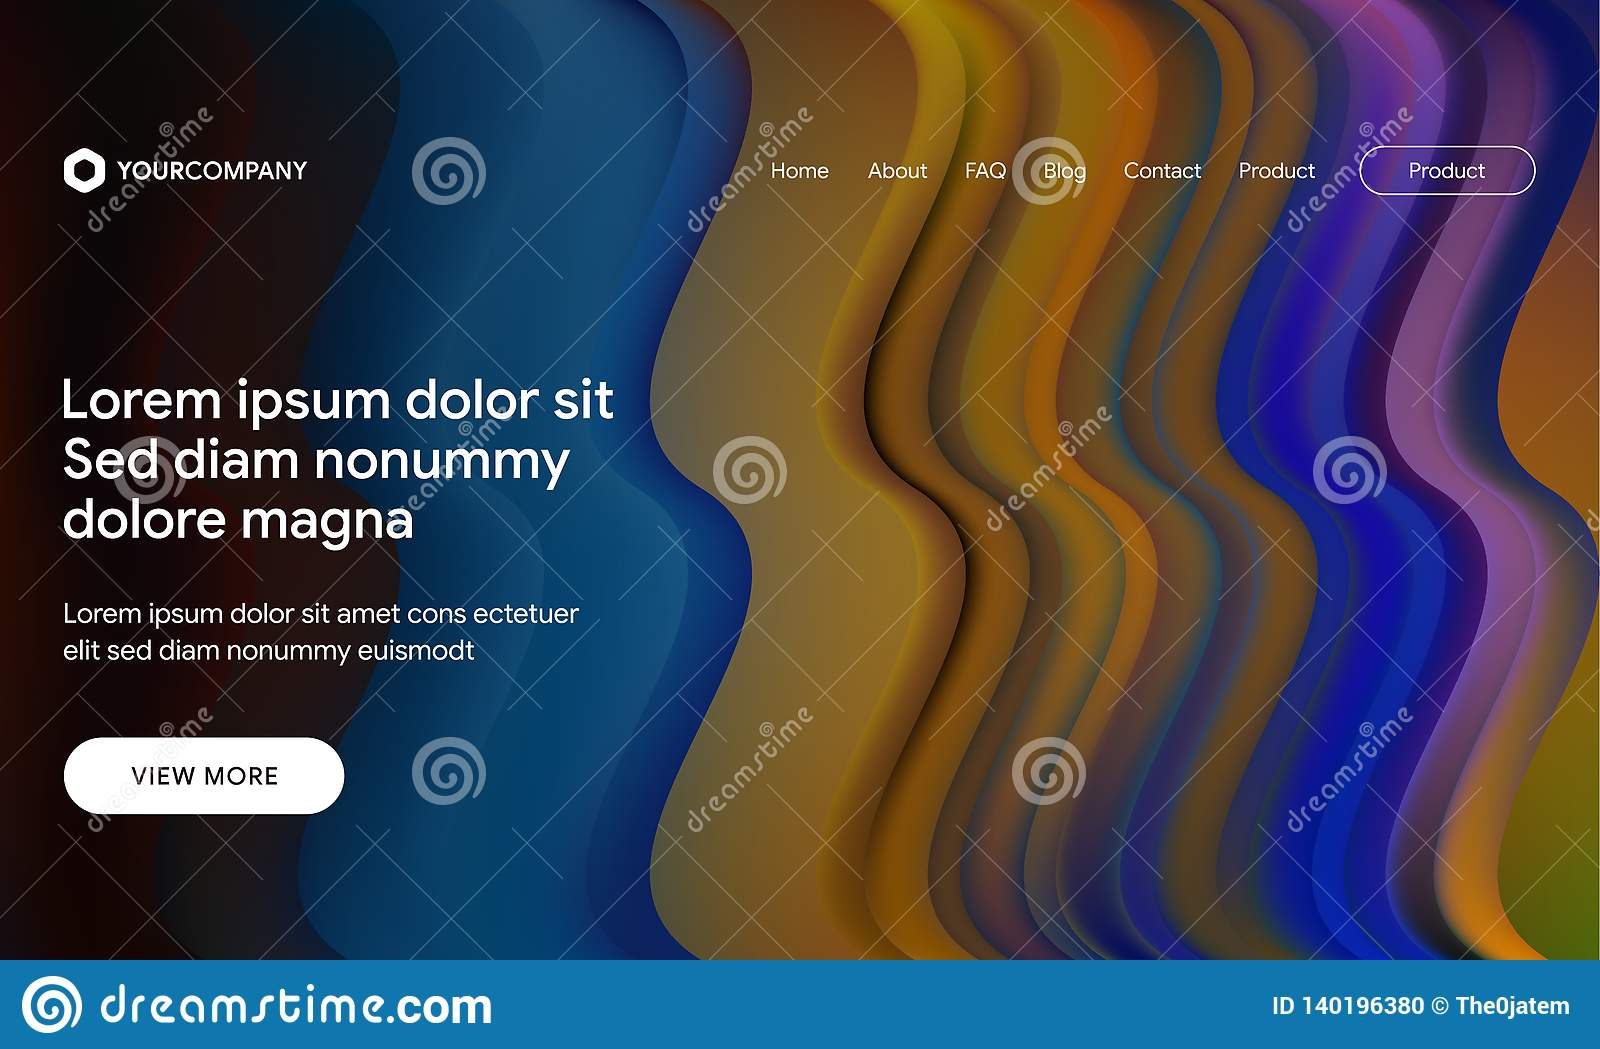 Vector illustration of Modern design with flow shape and liquid wave background. Responsive landing page or web template design